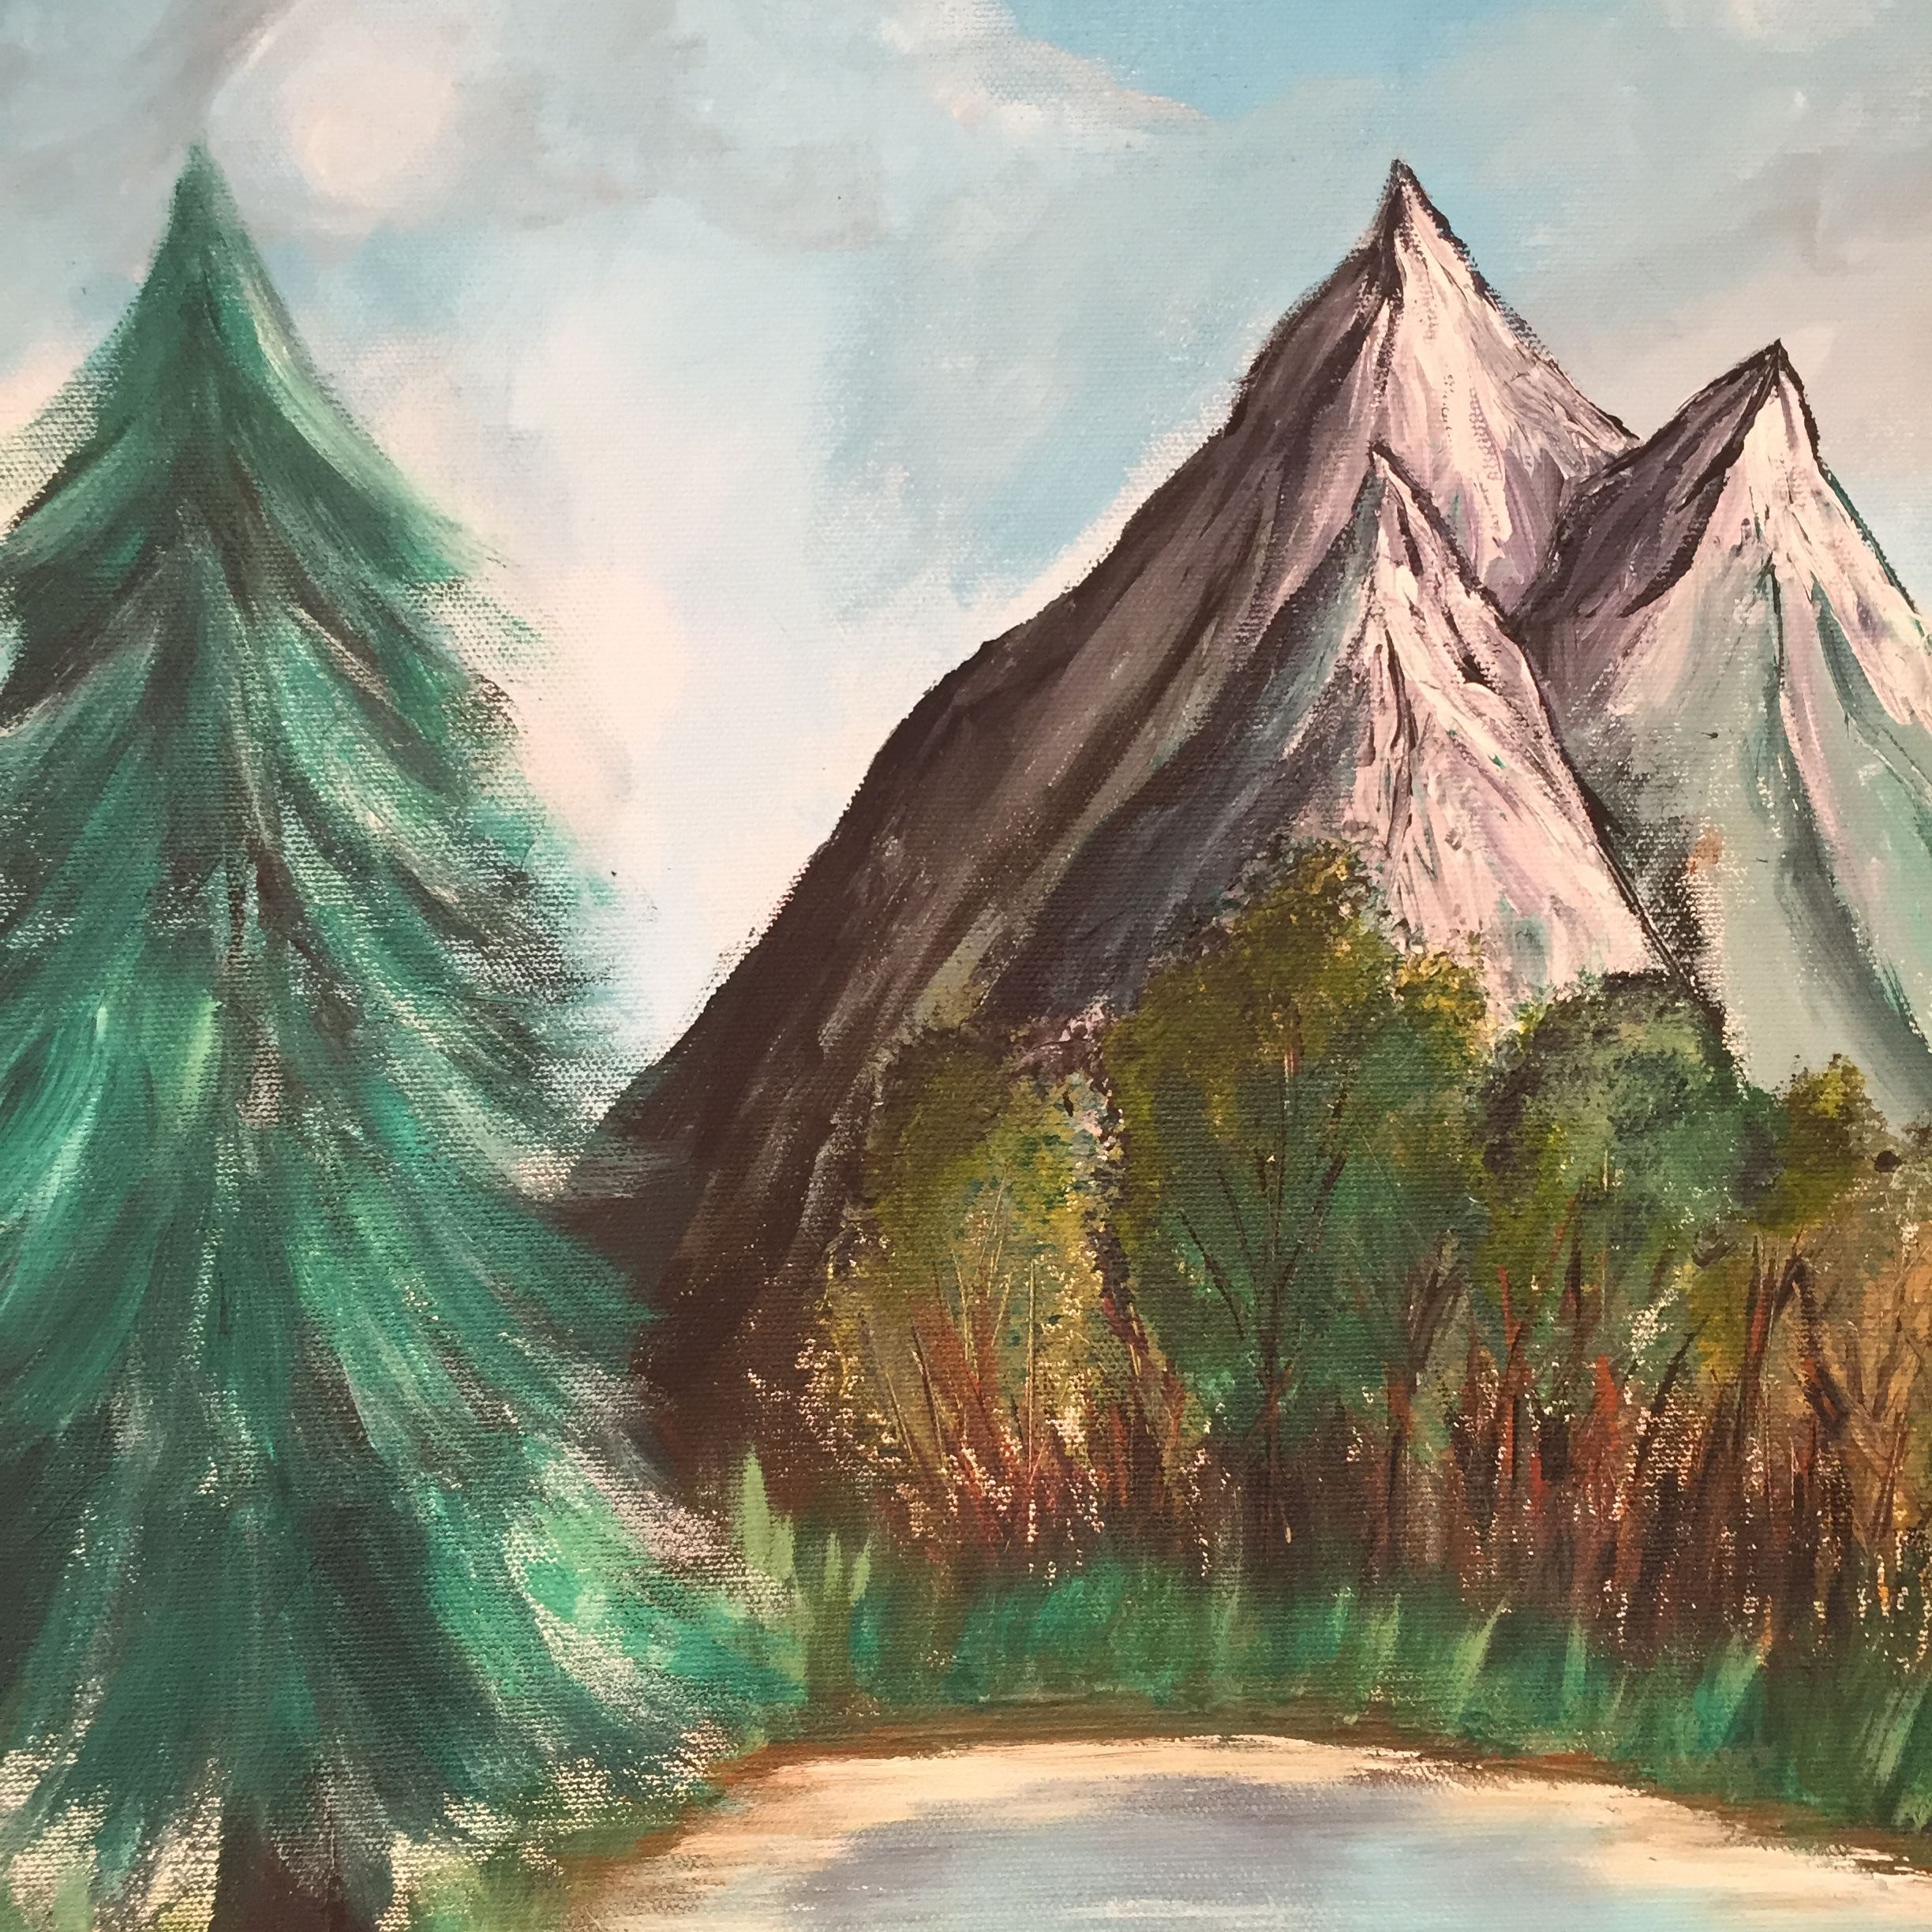 Painting of mountain peaks and trees